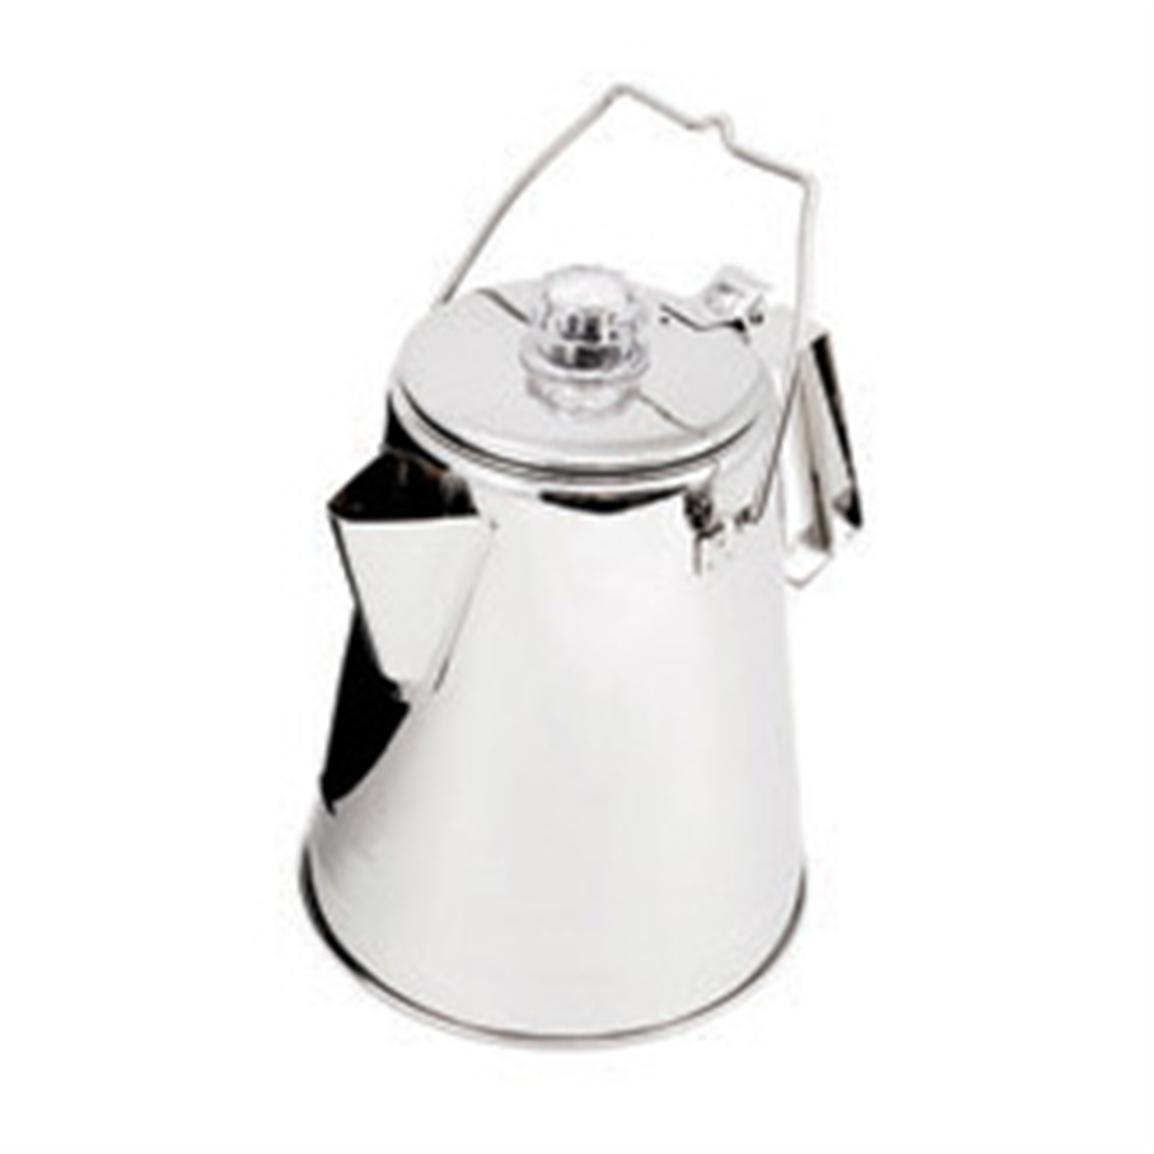 Glacier Stainless Steel Conical Percolator by GSI Outdoors